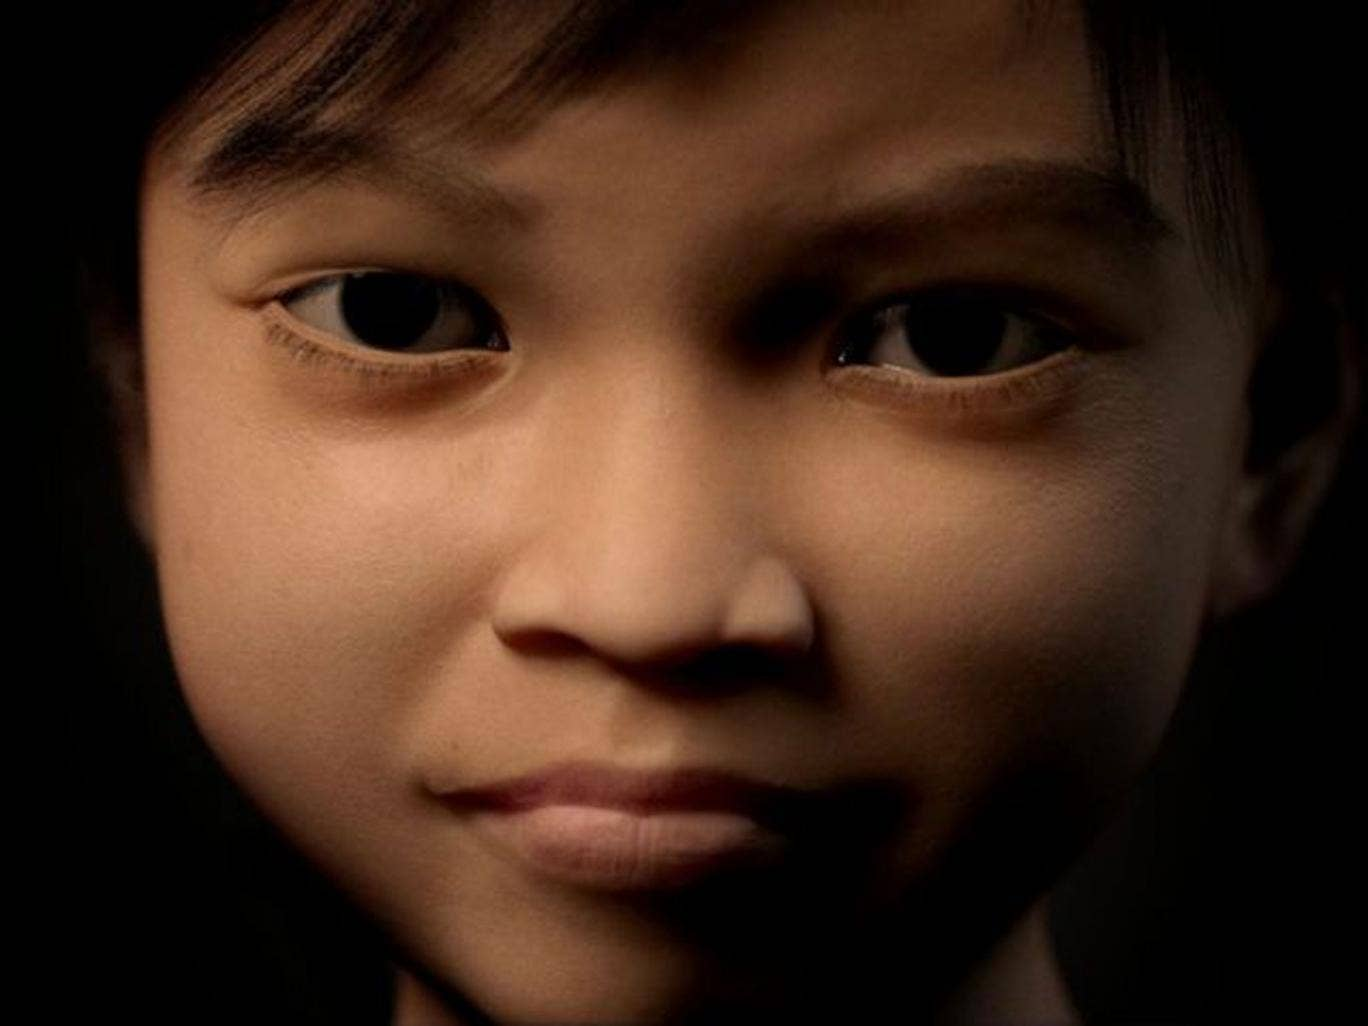 A computer-generated image made available by Terres des Hommes shows virtual alias 'Sweetie' designed as the face of a 10-year-old Filipino girl